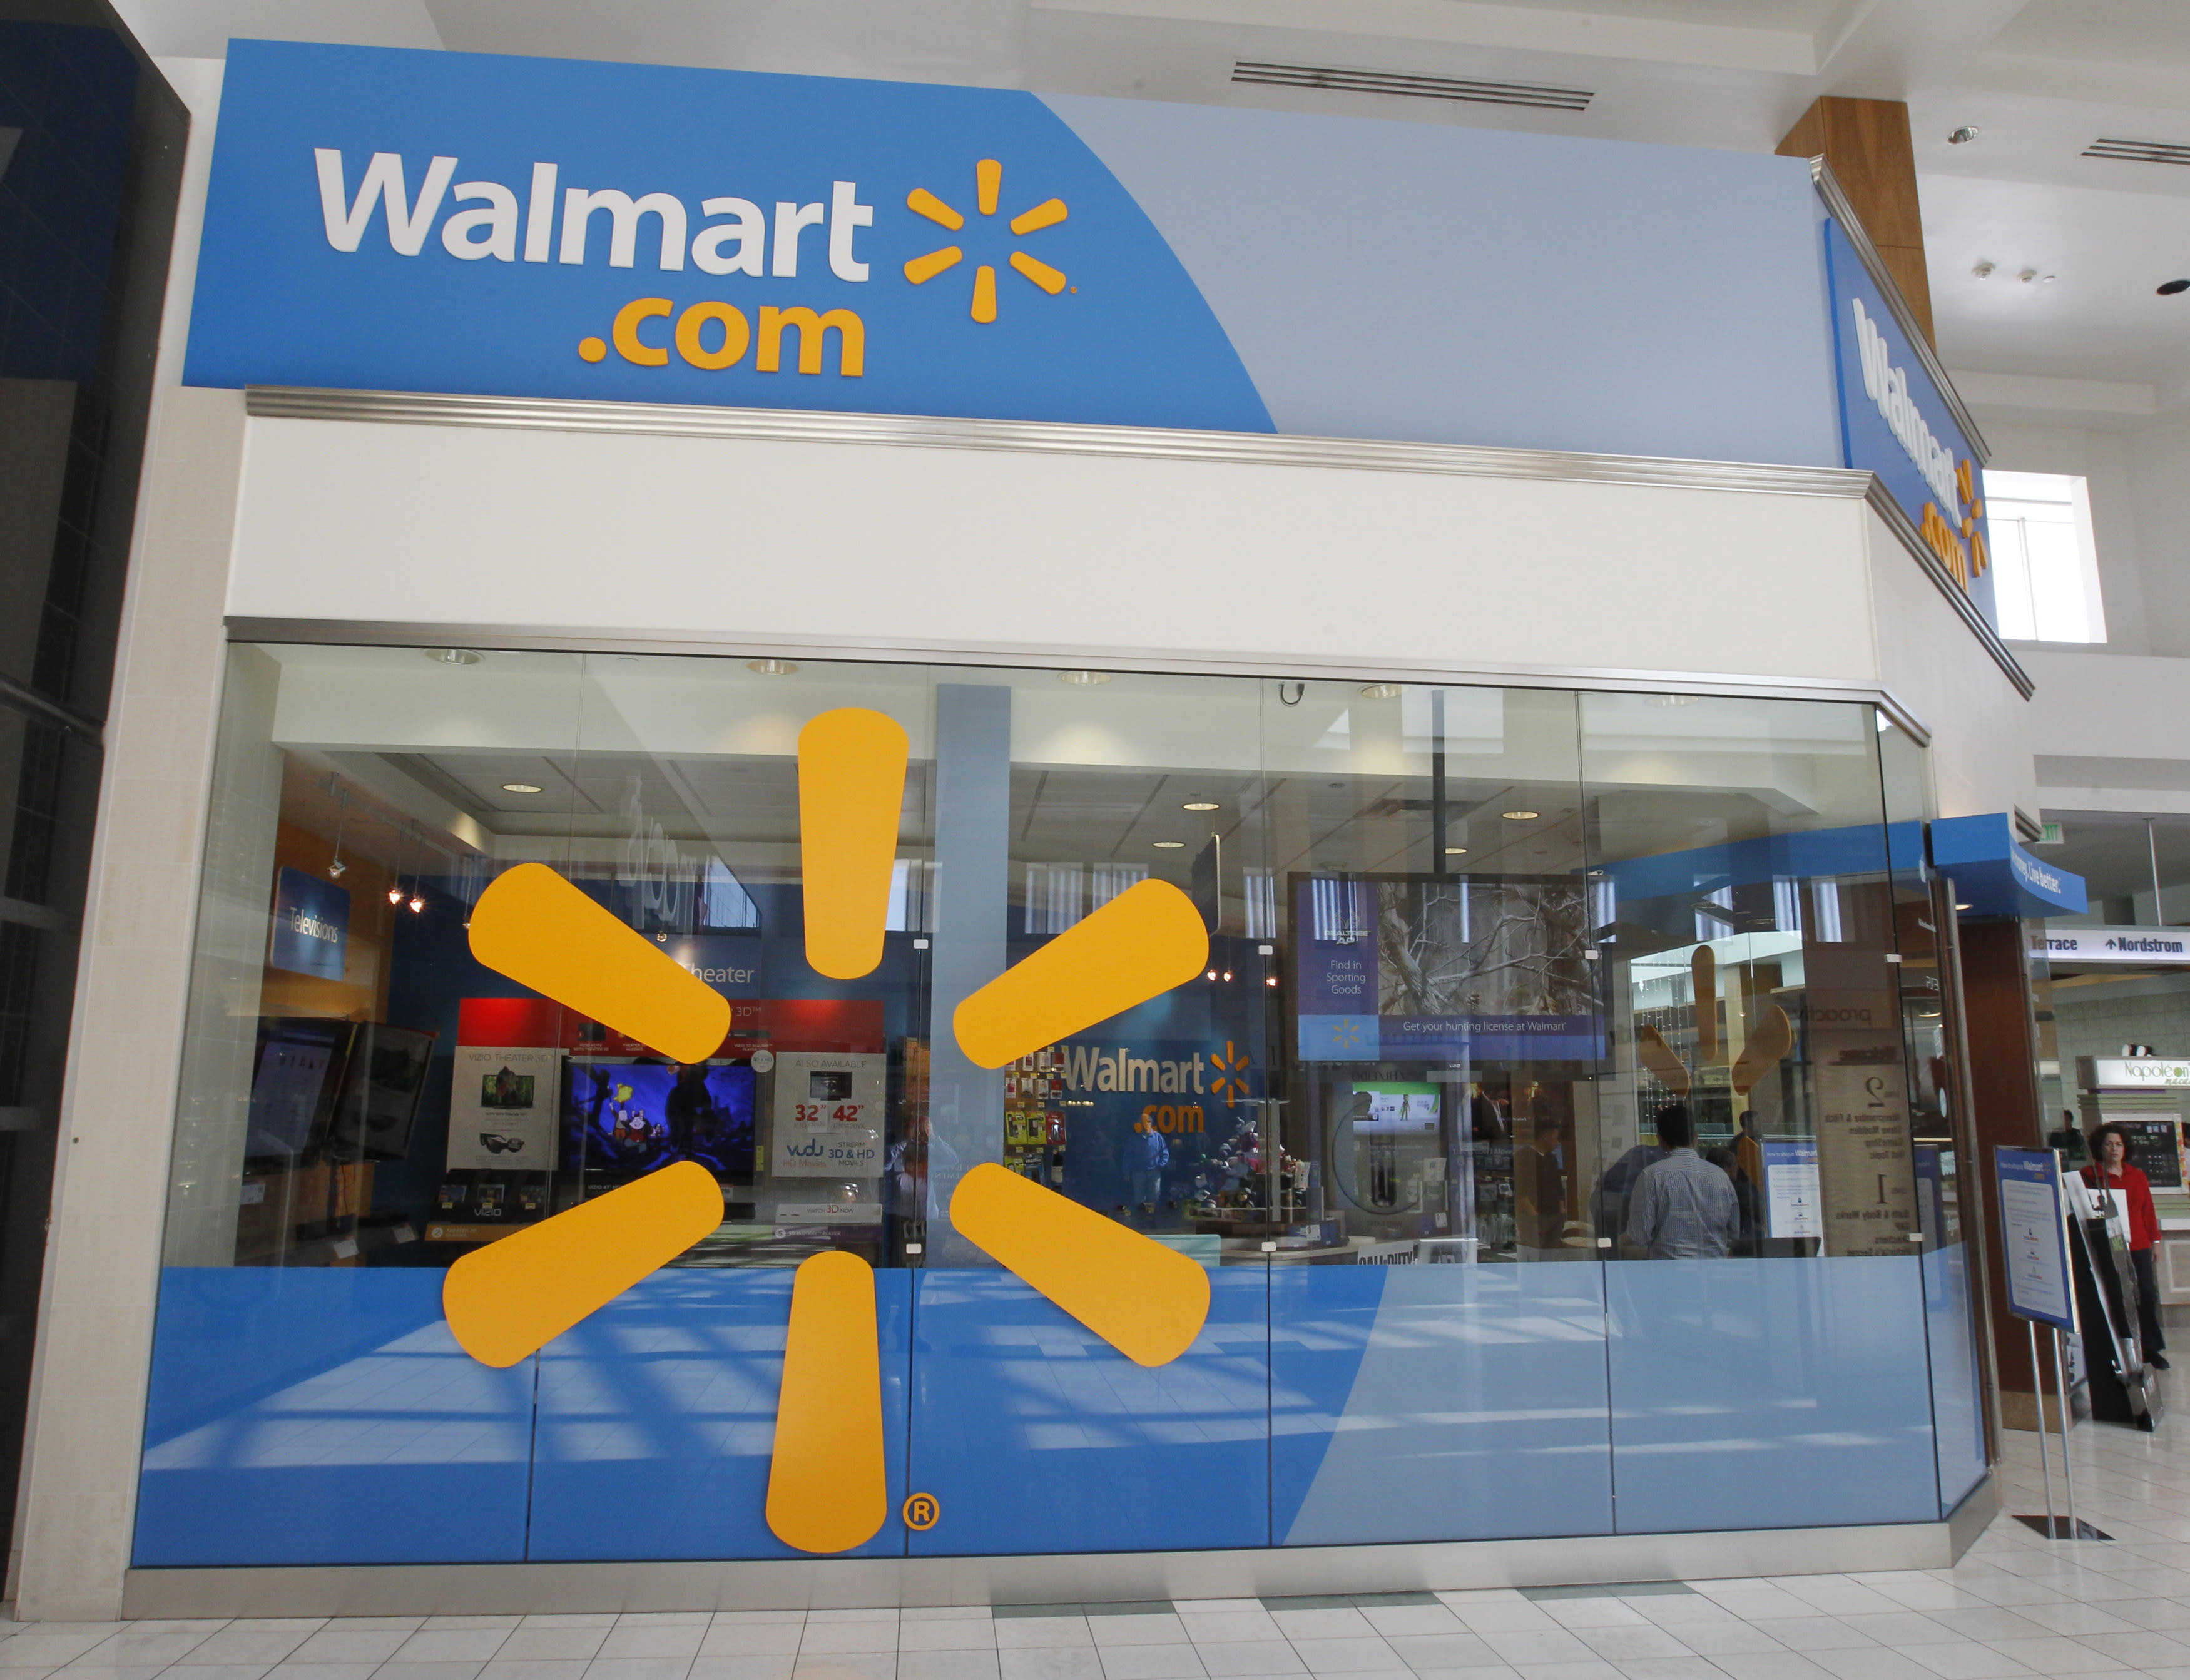 Why you shouldn't care about Walmart losing $1 billion a